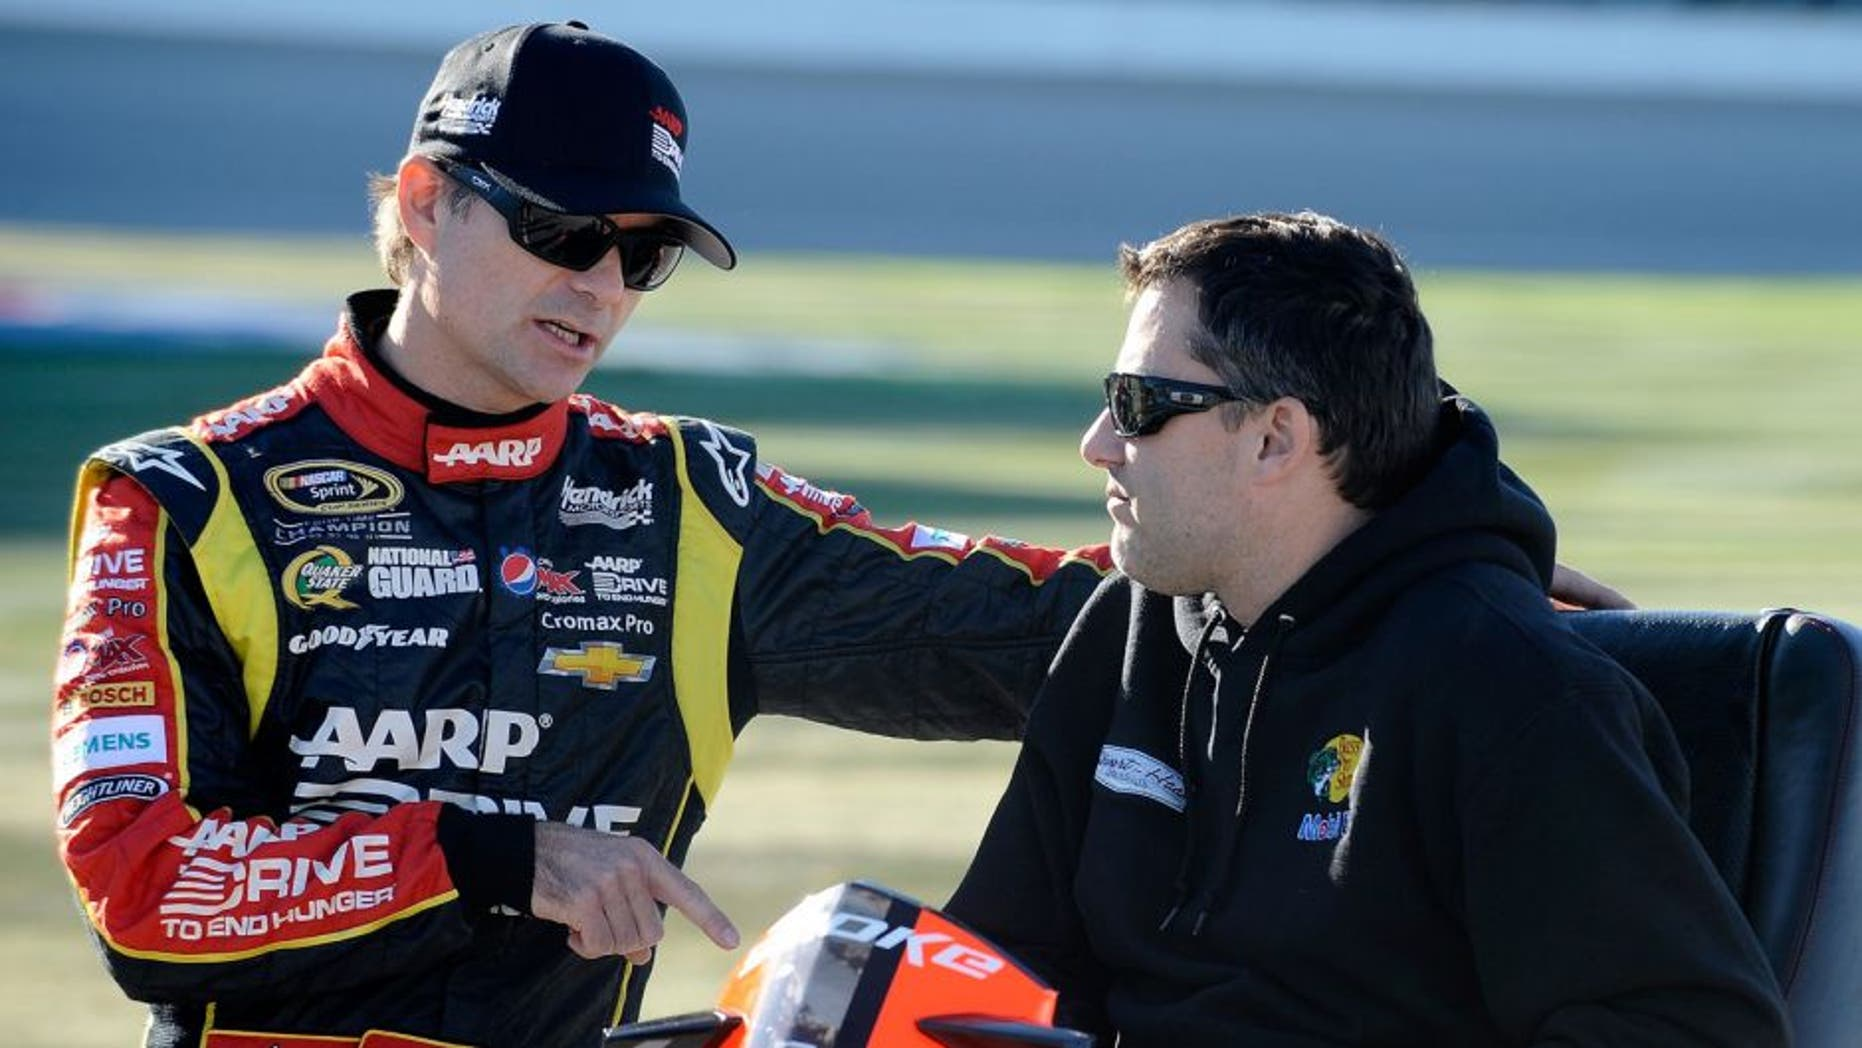 JOLIET, IL - SEPTEMBER 13: Jeff Gordon, driver of the #24 Drive To End Hunger Chevrolet, speaks with Tony Stewart during qualifying for the NASCAR Sprint Cup Series Geico 400 at Chicagoland Speedway on September 13, 2013 in Joliet, Illinois. (Photo by Rainier Ehrhardt/NASCAR via Getty Images)